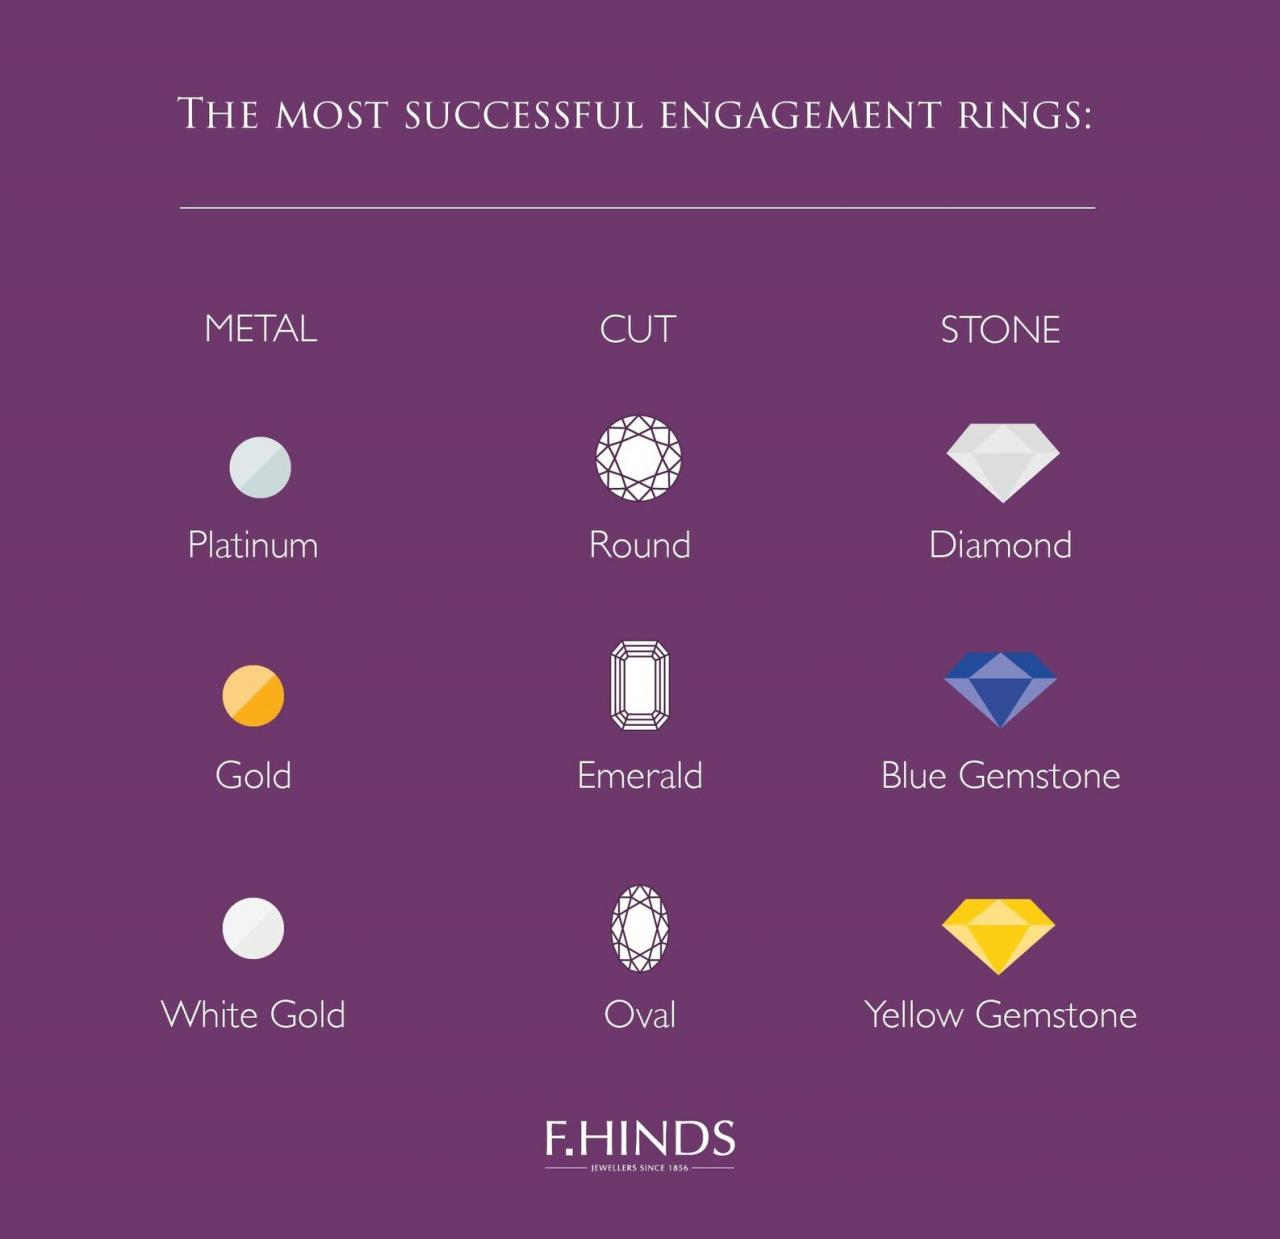 The most successful engagement rings